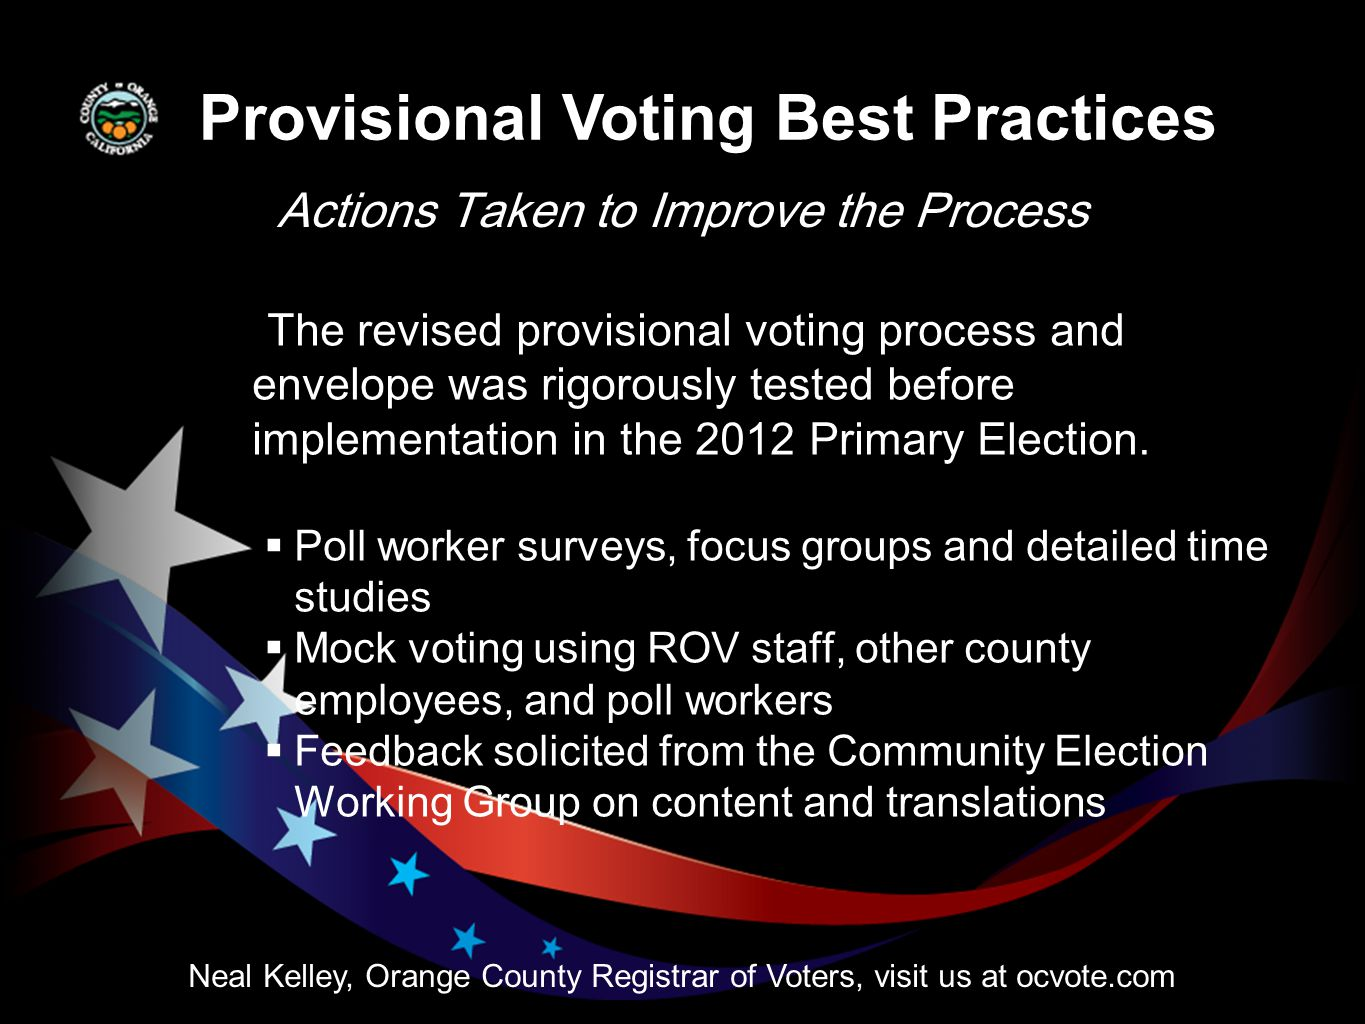 Actions Taken to Improve the Process Neal Kelley, Orange County Registrar of Voters, visit us at ocvote.com The revised provisional voting process and envelope was rigorously tested before implementation in the 2012 Primary Election.